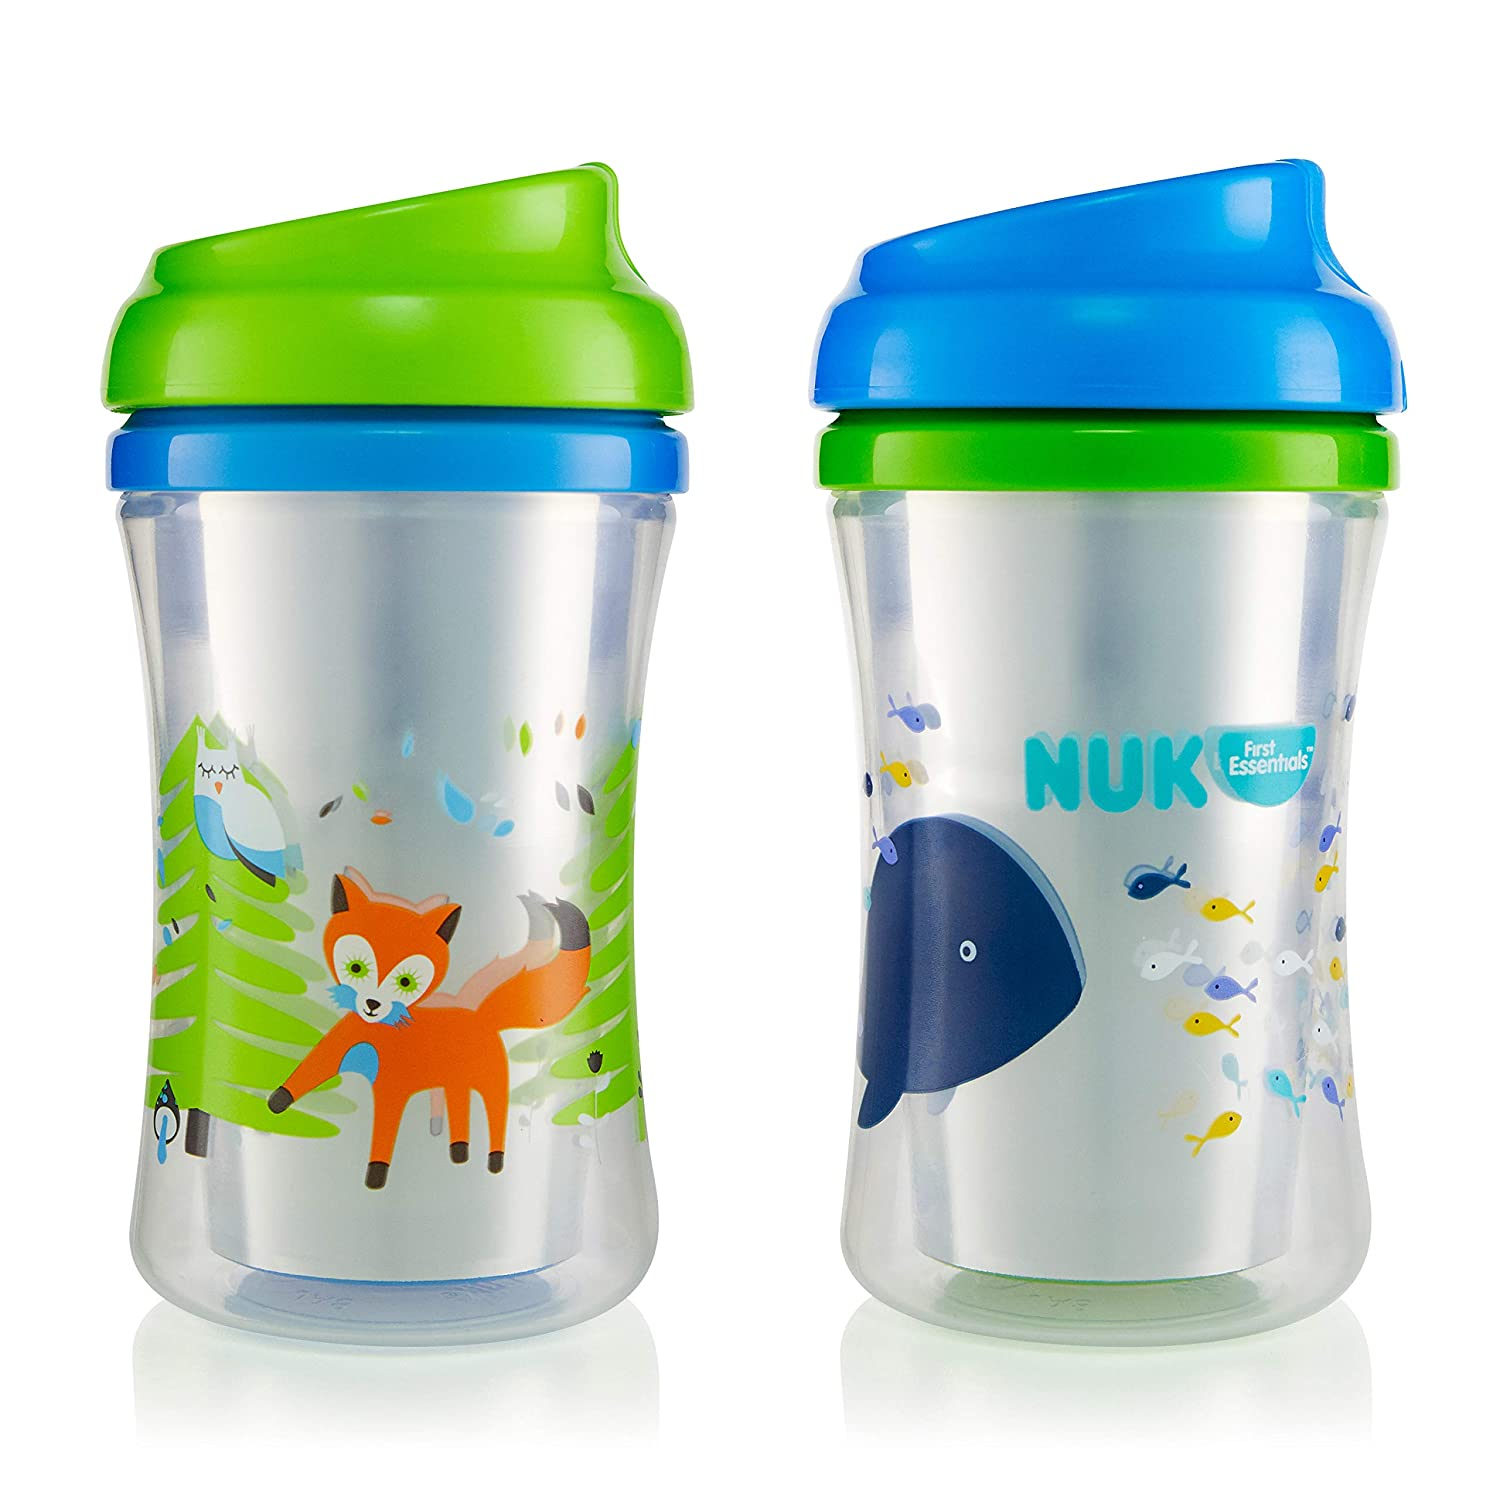 NUK Gerber Graduates Advance 2 Piece with Seal Zone Insulated Cup-Like Rim Si...